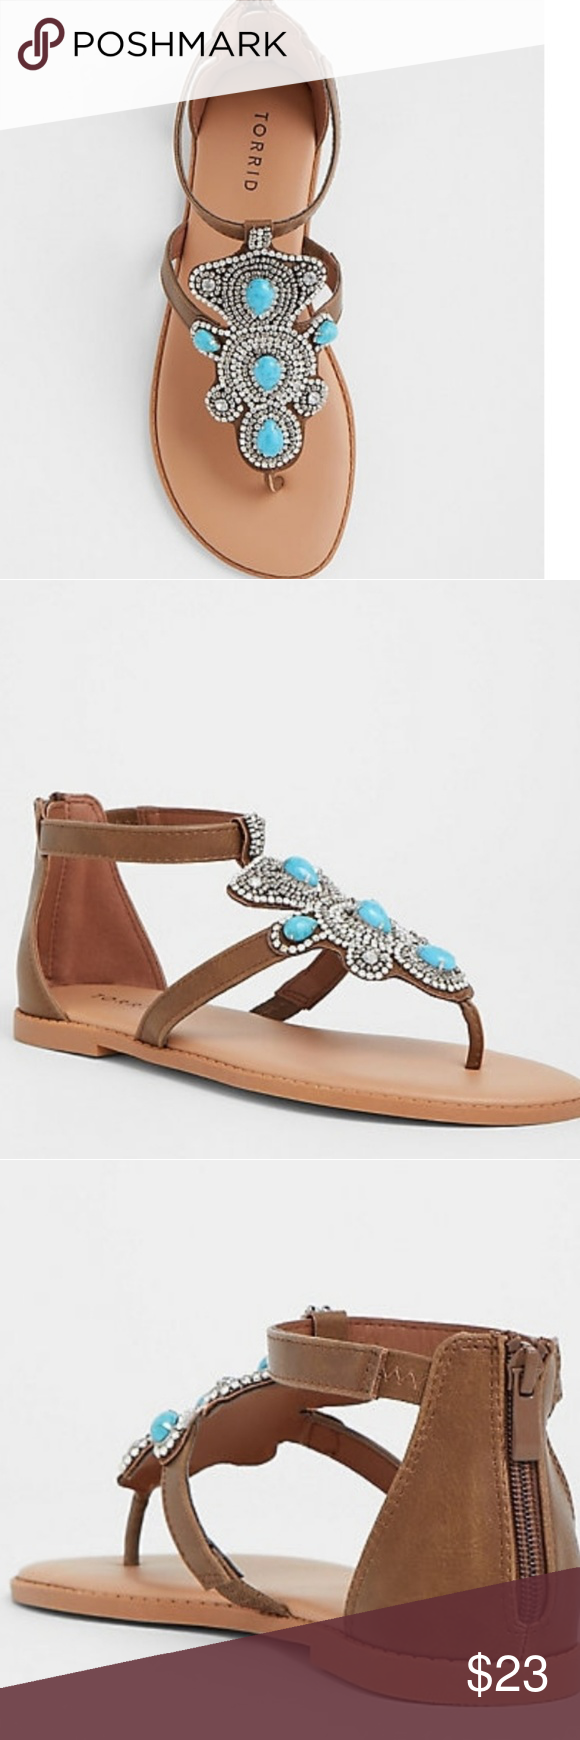 41d65947a53681 WIDE WIDTH BROWN TURQUOISE STONE SANDAL 💞 Turquoise Stones And Rhinestones  Accent A Brown T-